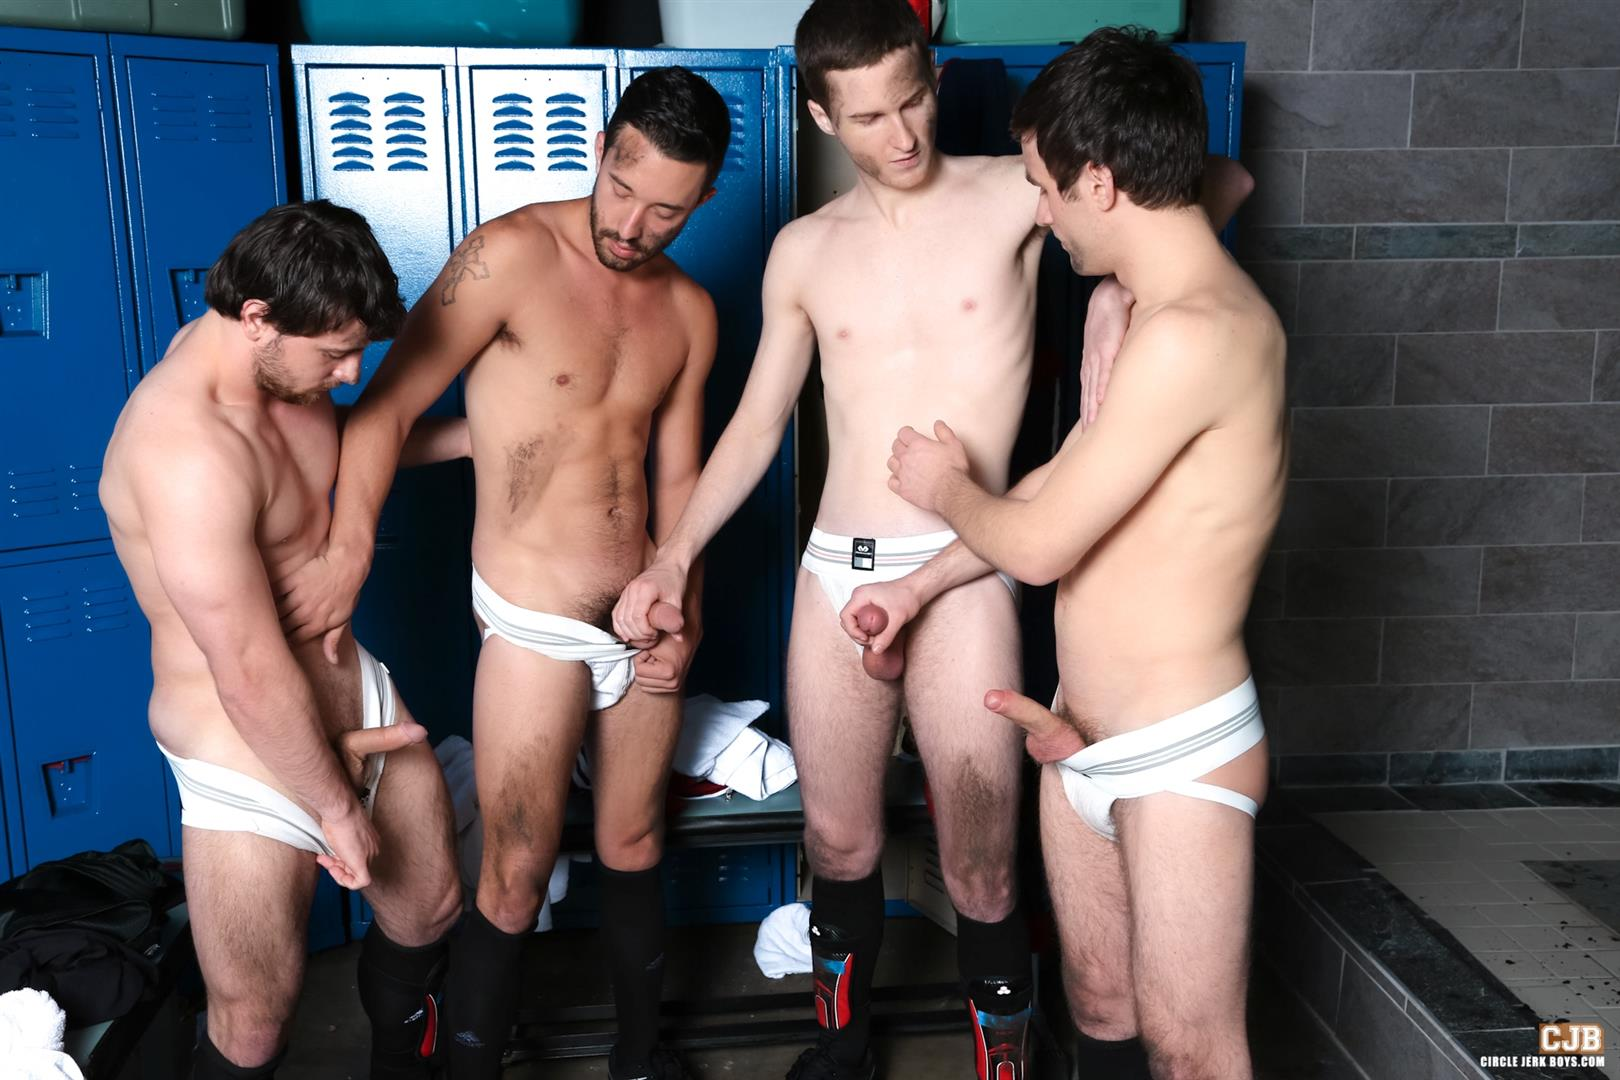 Circle jerk competition sex pictures